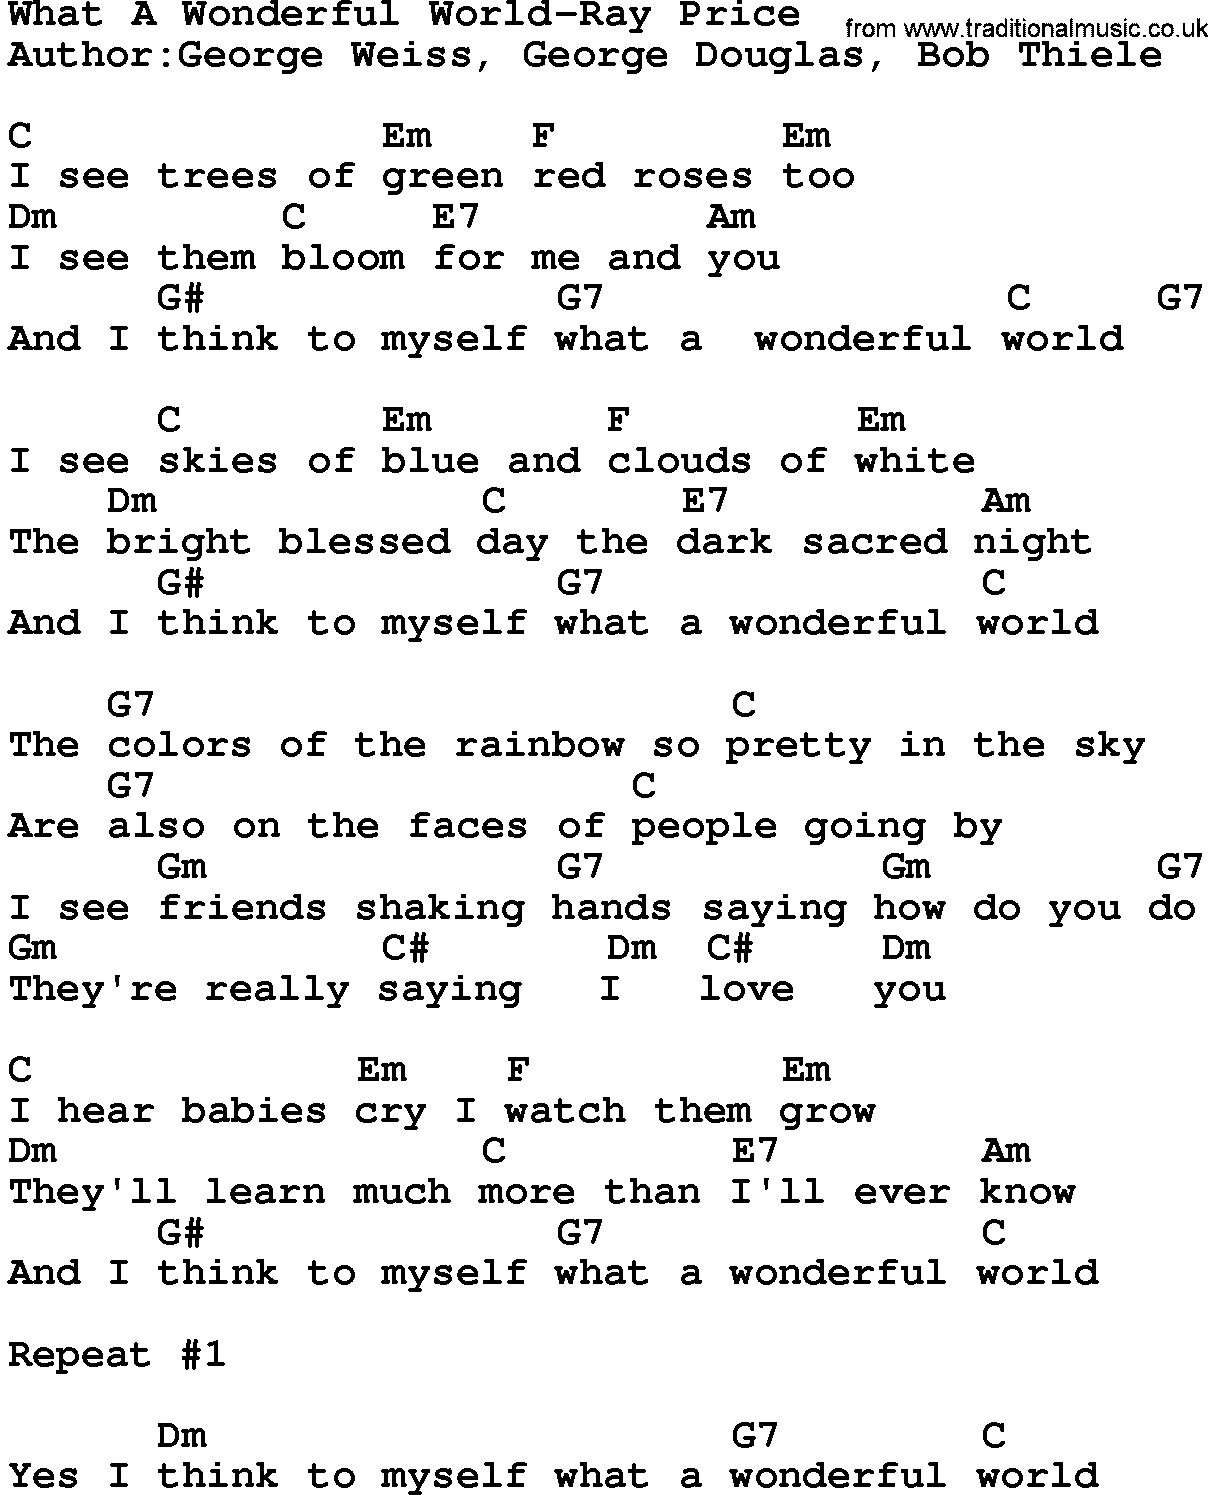 What A Wonderful World Chords Country Musicwhat A Wonderful World Ray Price Lyrics And Chords